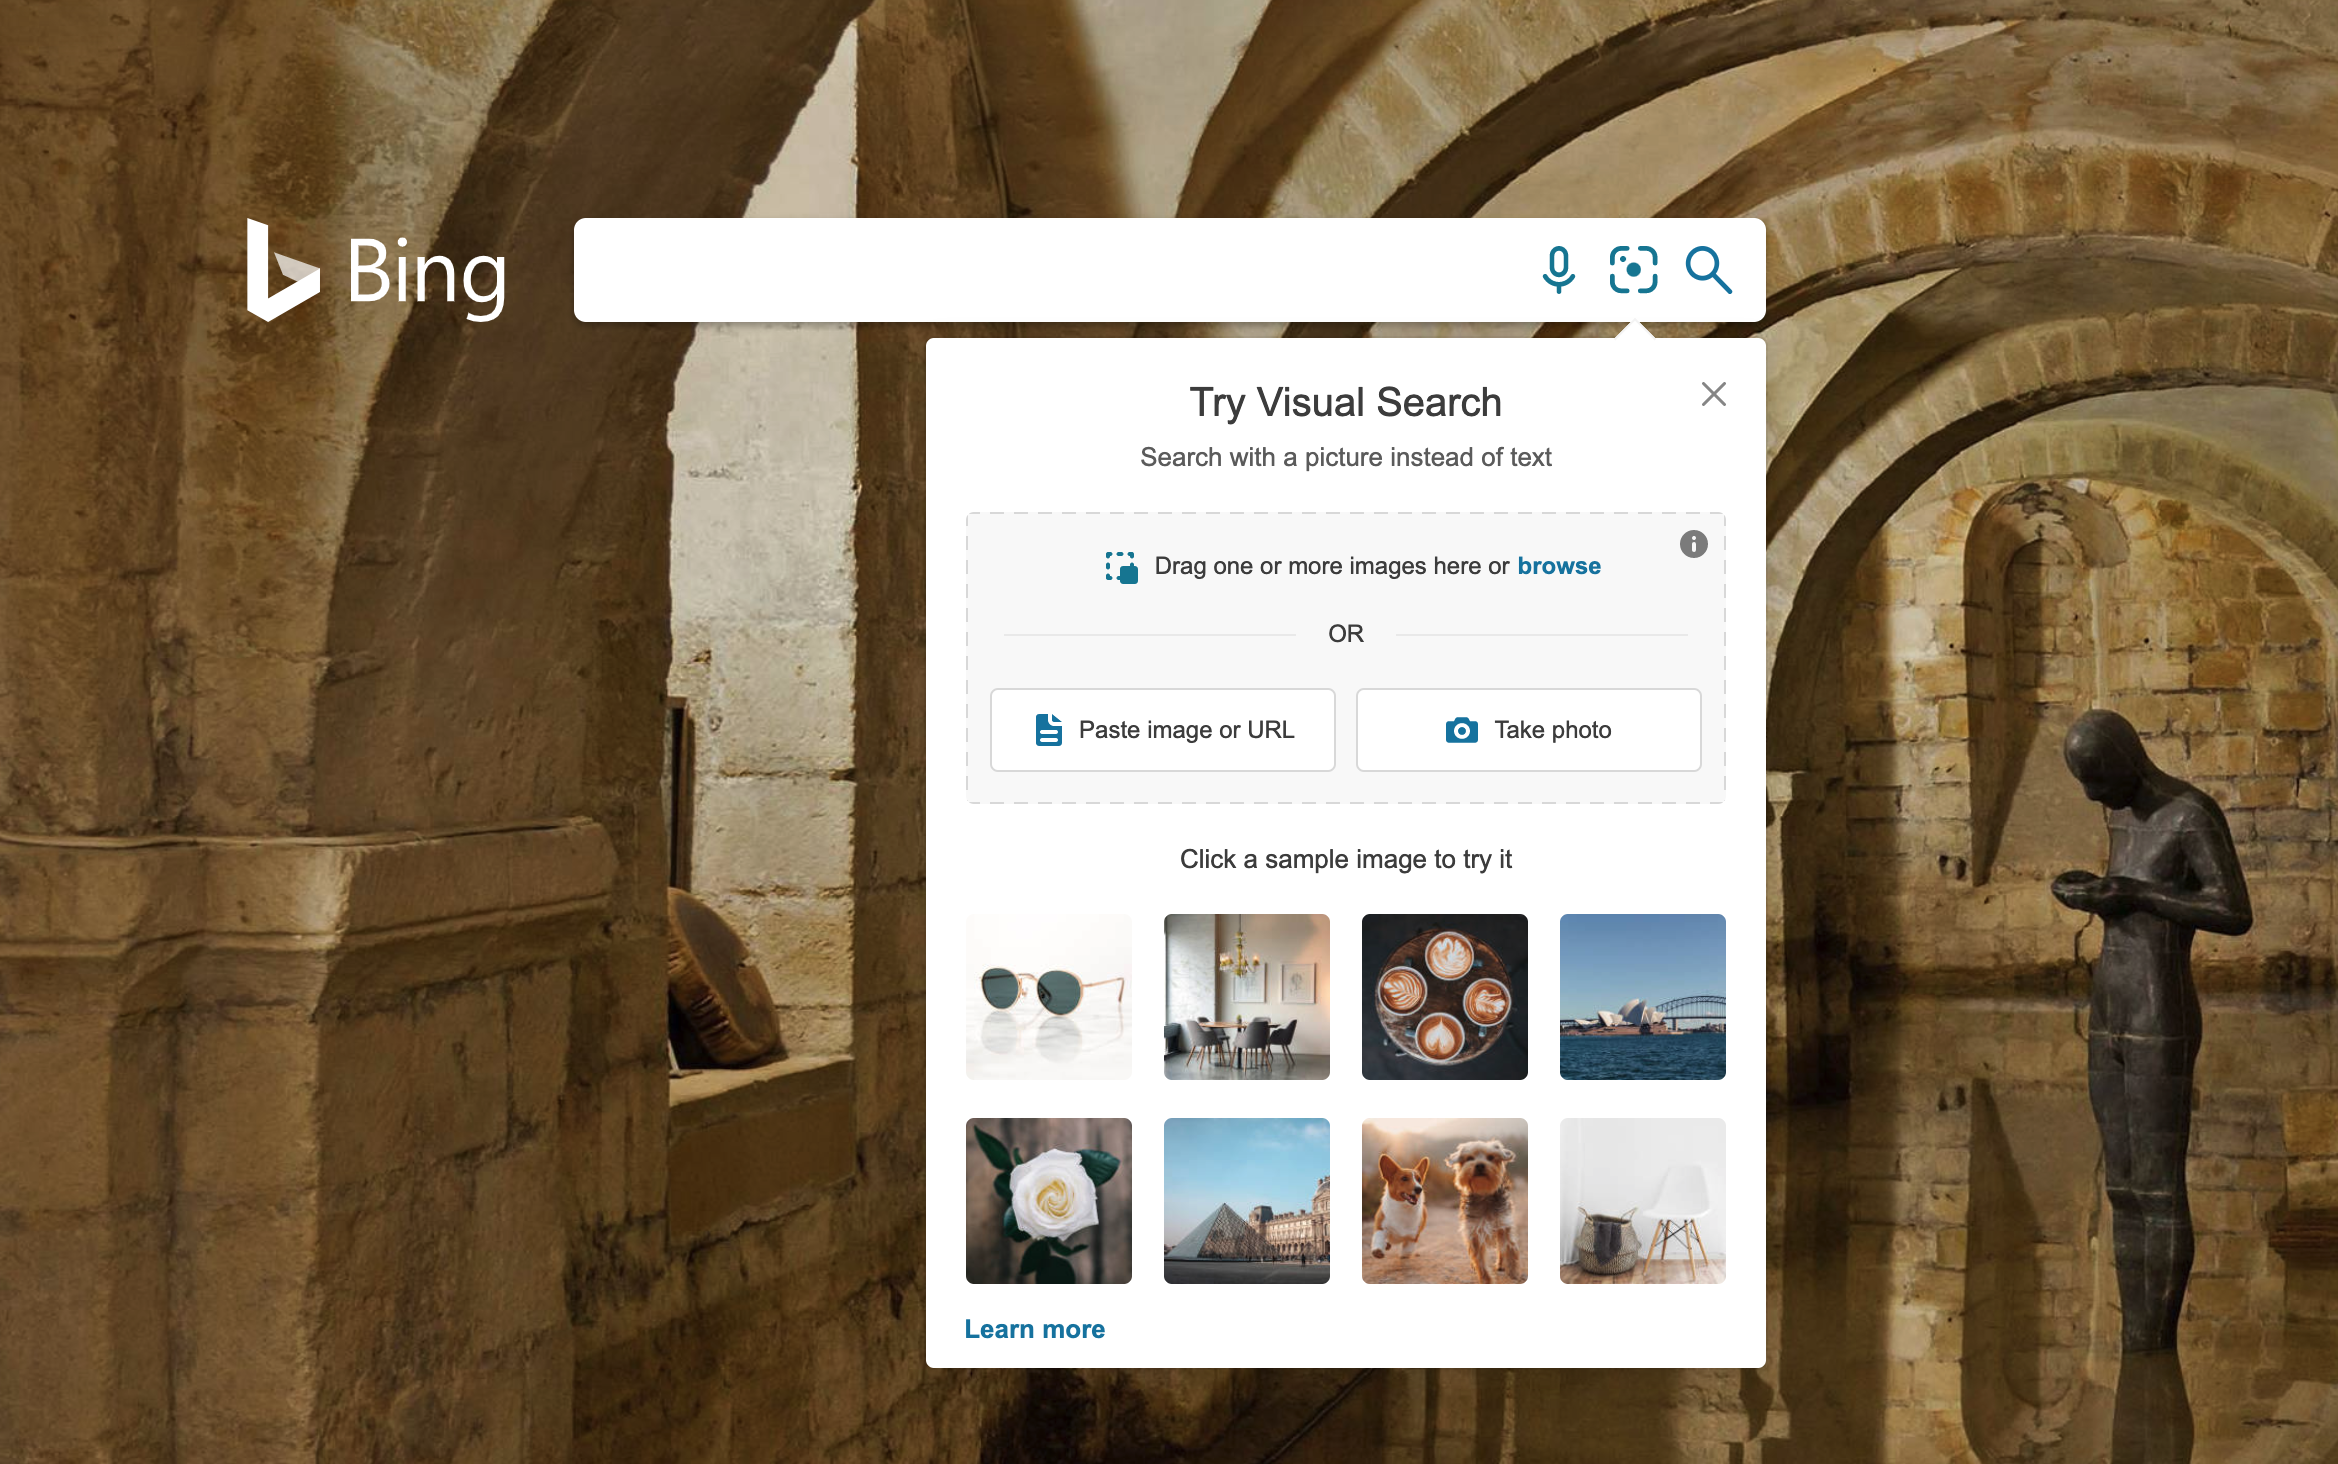 Bing visual search options screenshot